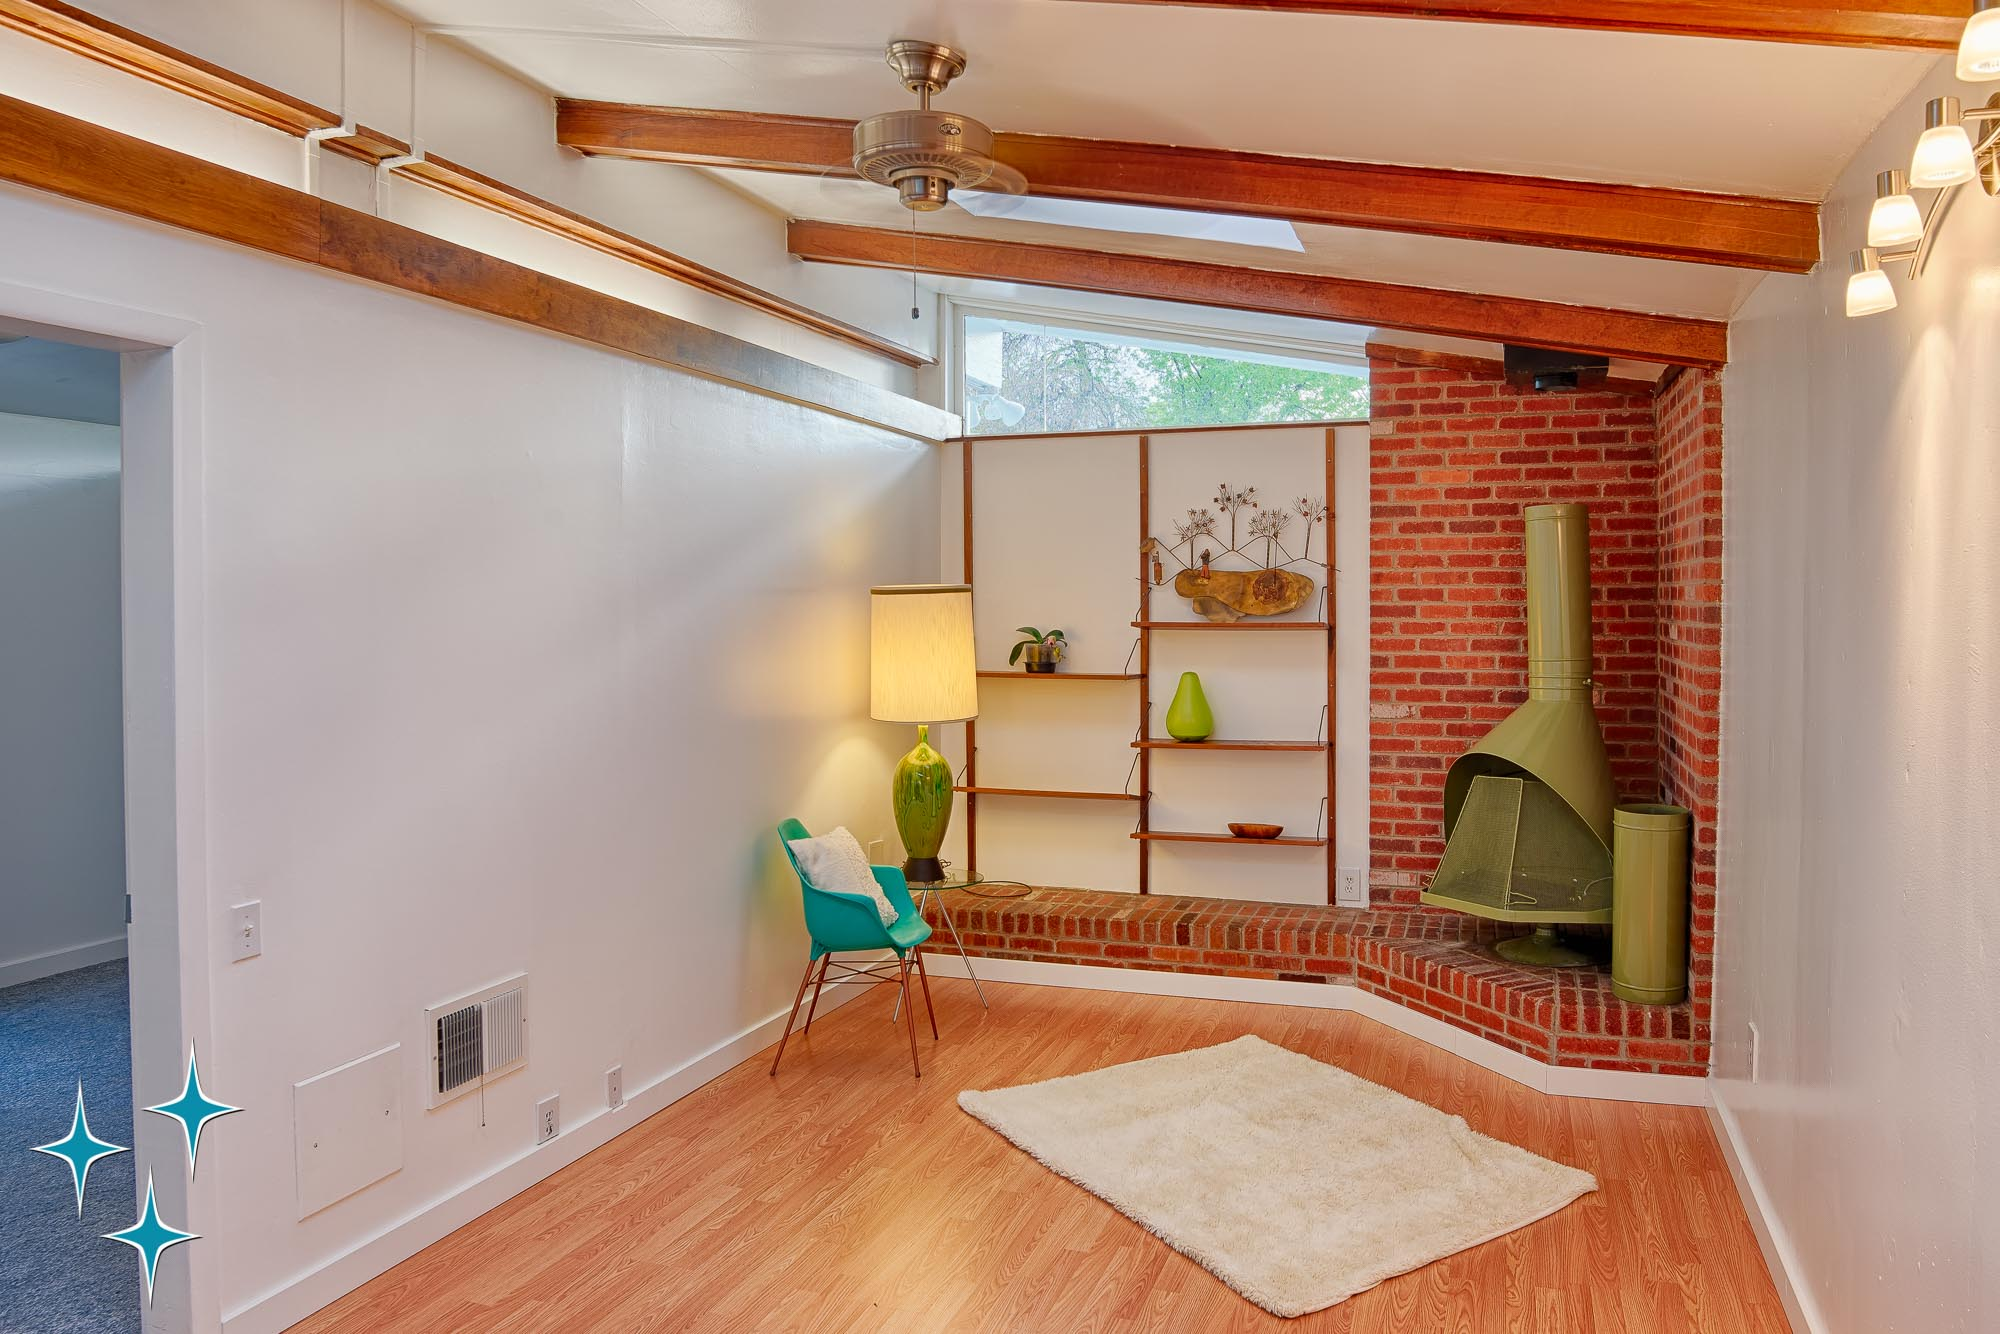 2500 S Meade Street, a Cliff May Home in Denver's Harvey Park offered by Adrian Kinney, Broker Associate, Resident Realty South Metro. A library addition with free-standing fireplace built into the original attached garage.